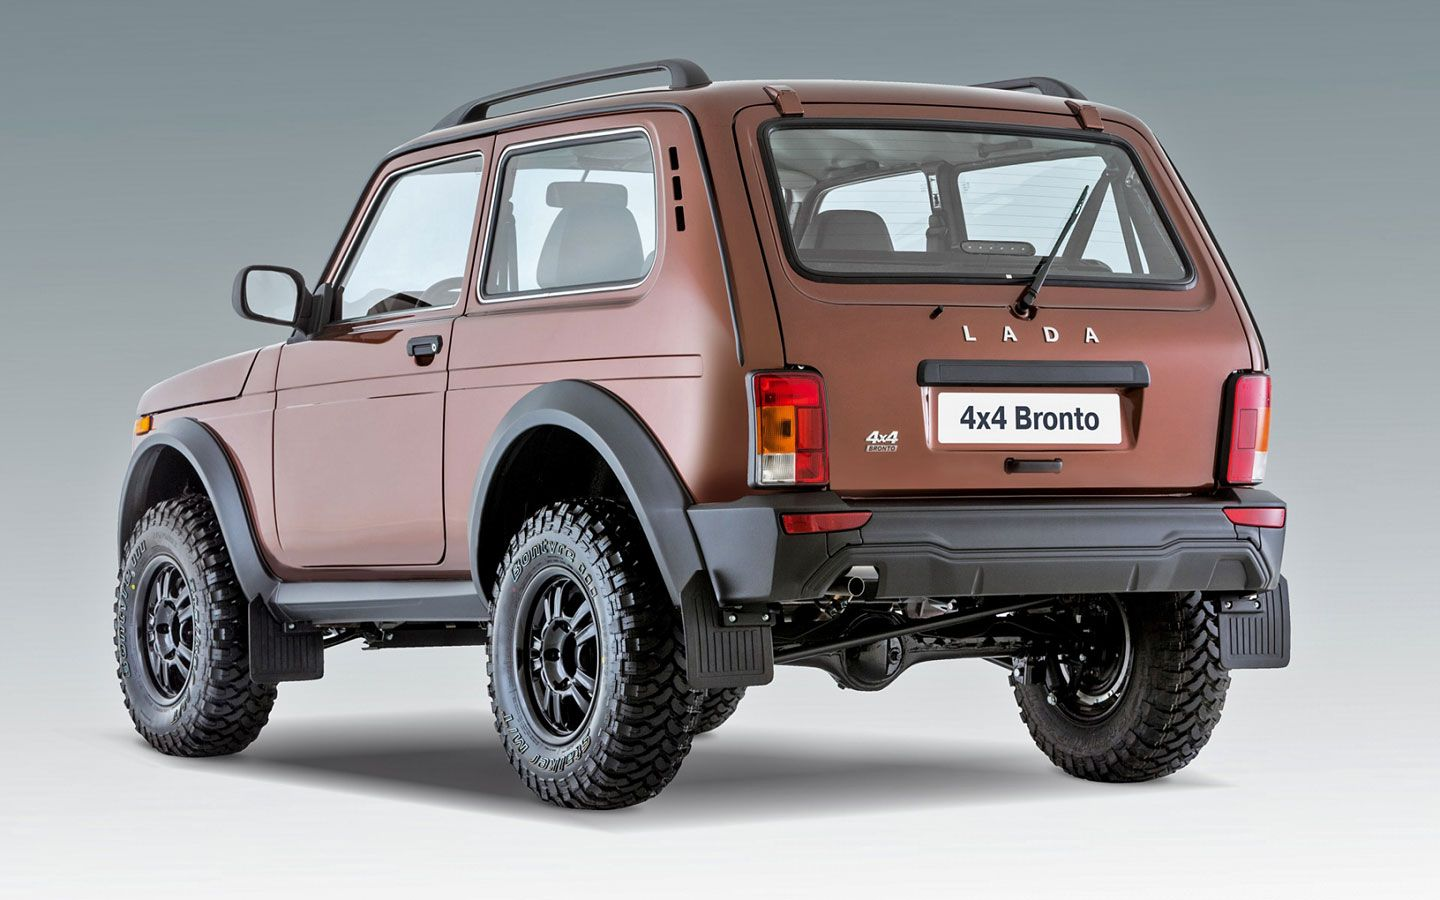 lada niva 4x4 bronto 4 x 4 trucks suv 4 pinterest 4x4. Black Bedroom Furniture Sets. Home Design Ideas